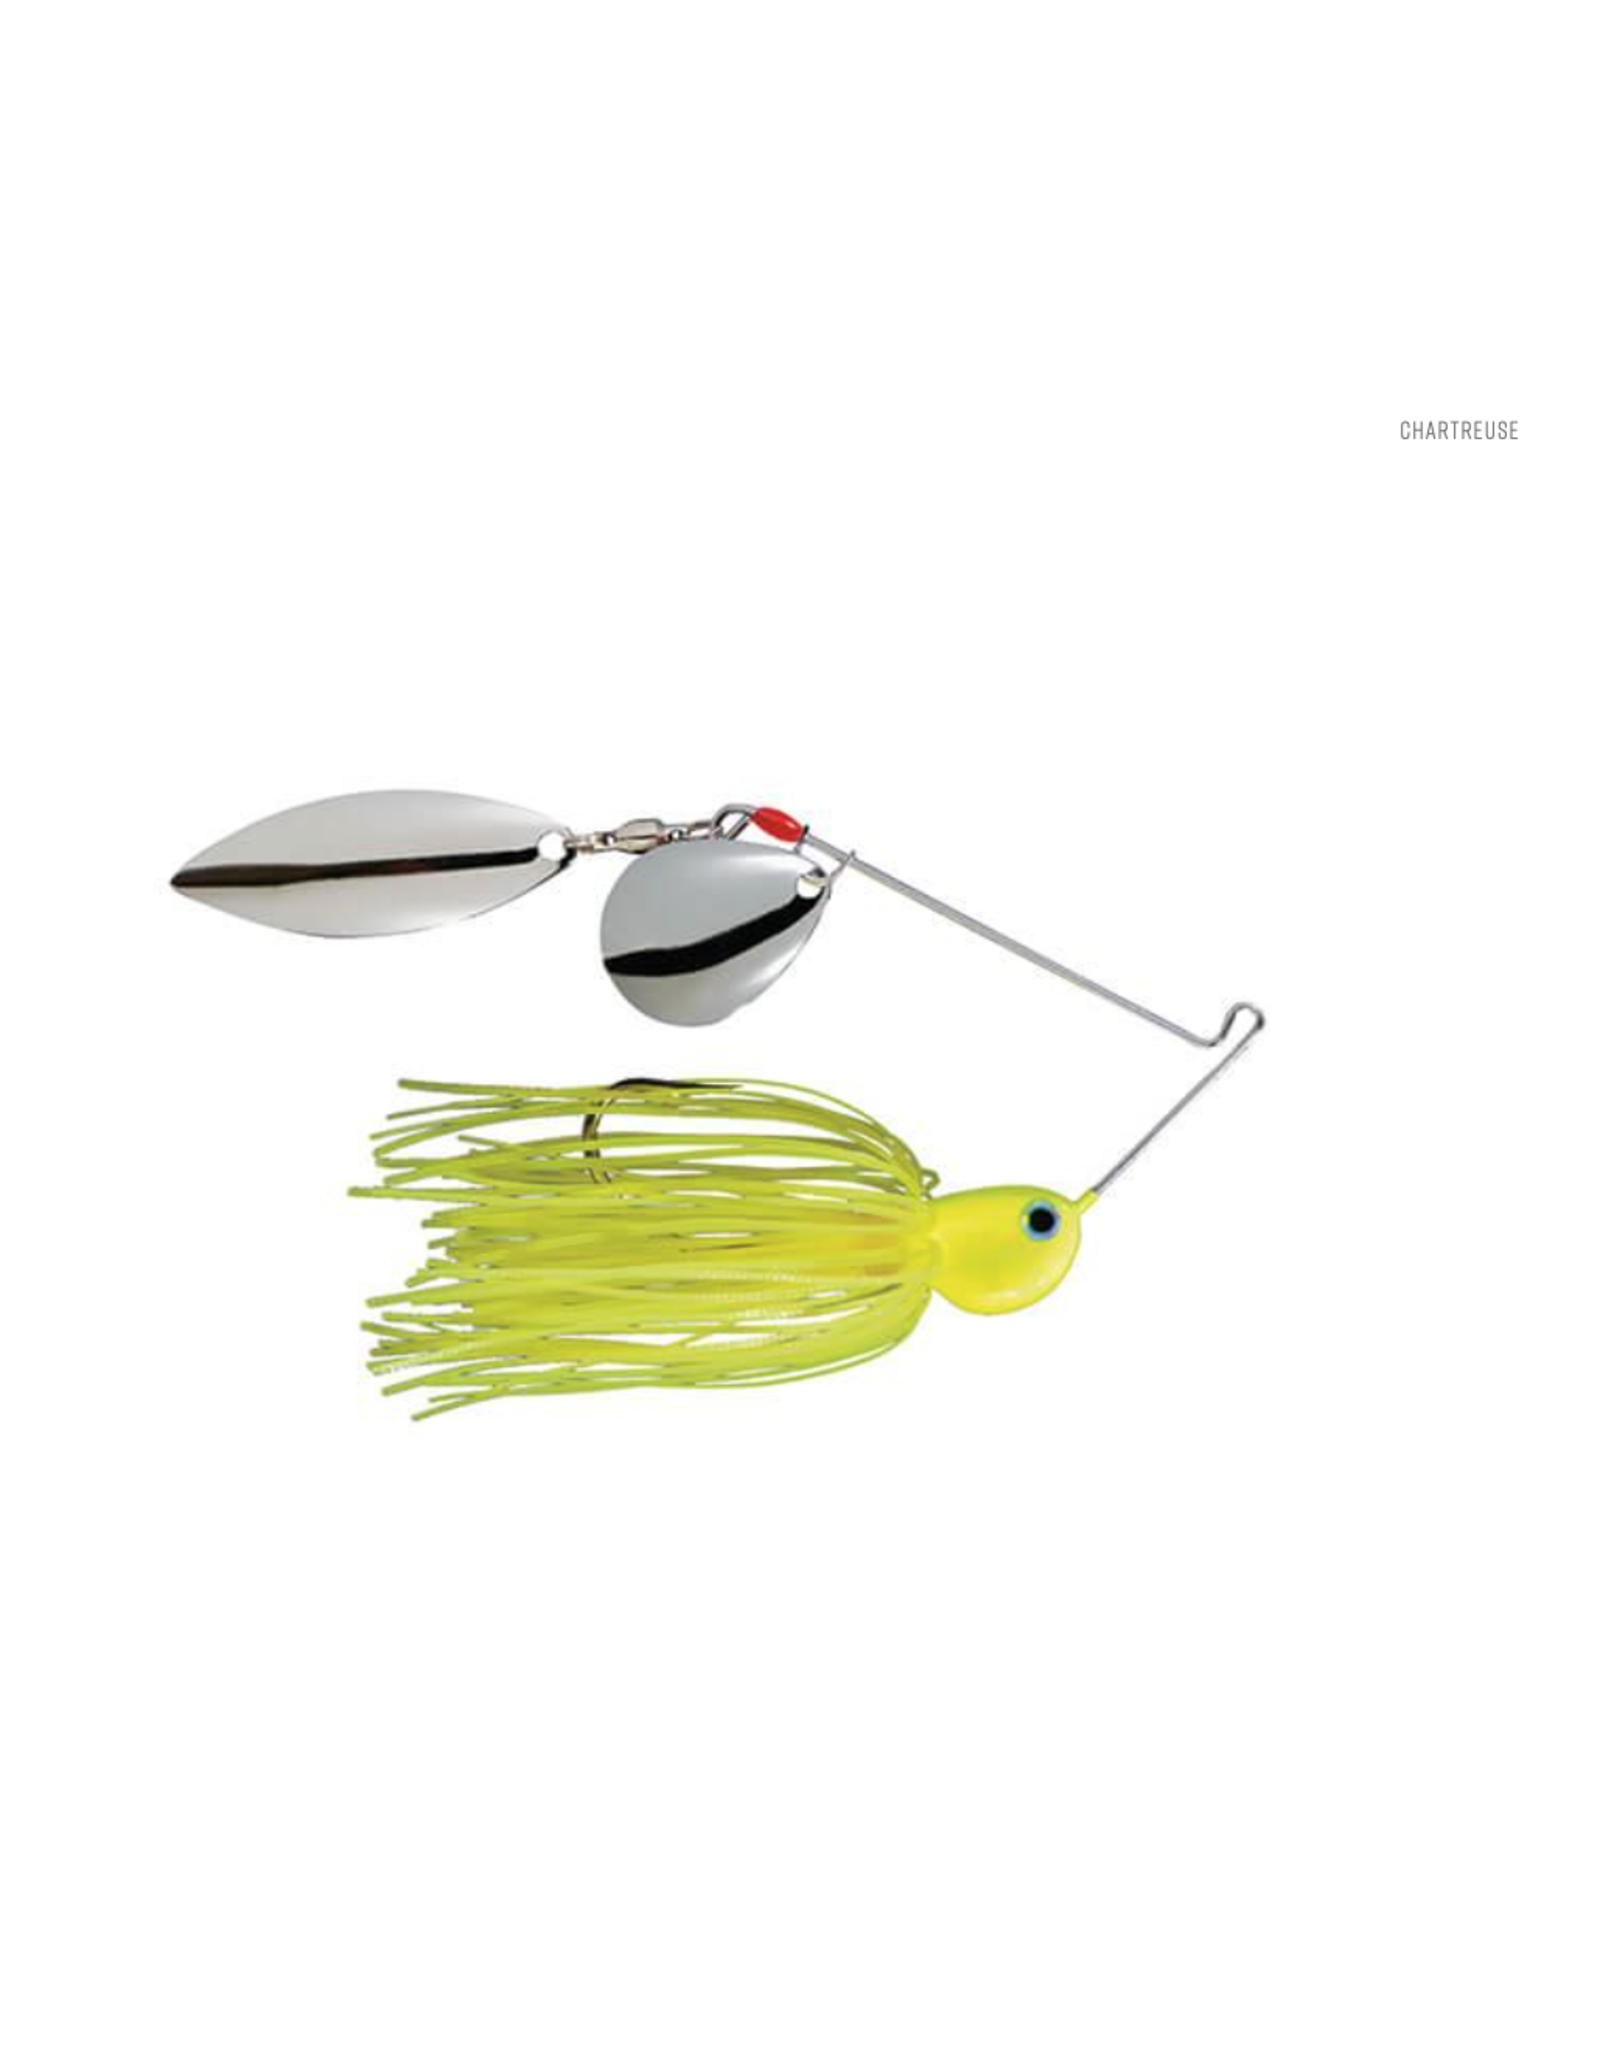 Potbelly Spinnerbait Chartreuse